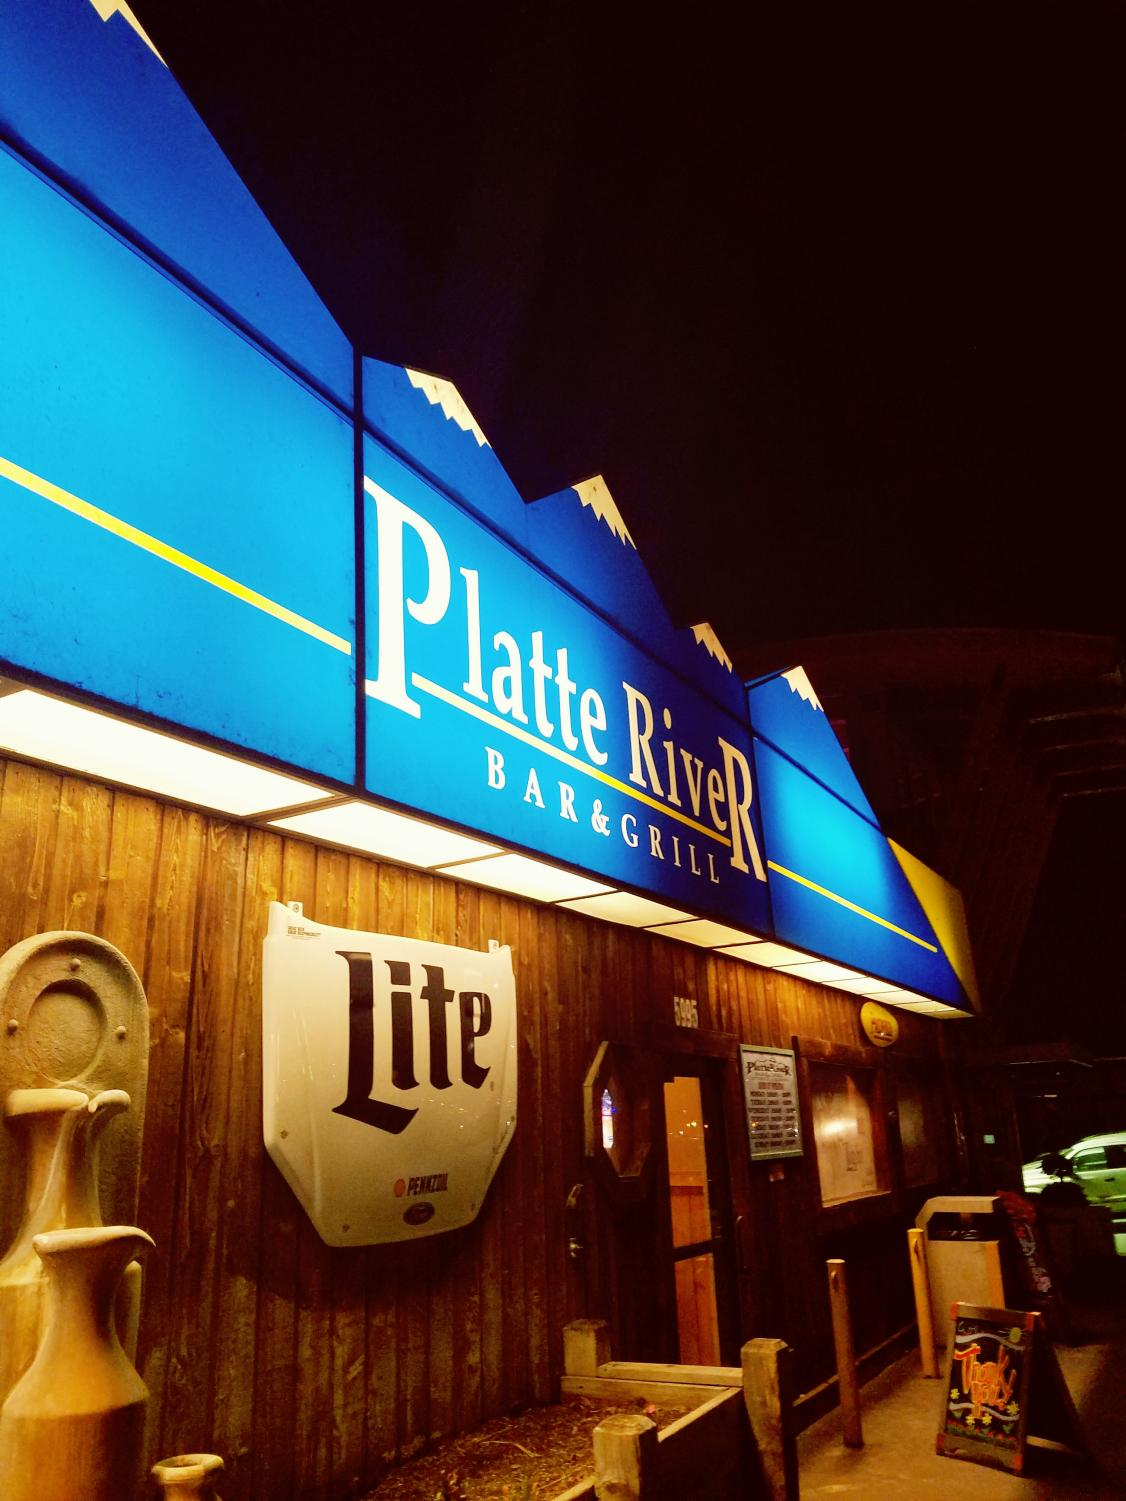 The Platte River Bar & Grill, located at 5995 S. Santa Fe Drive in Littleton, Colo., on the evening of March 6, 2018.